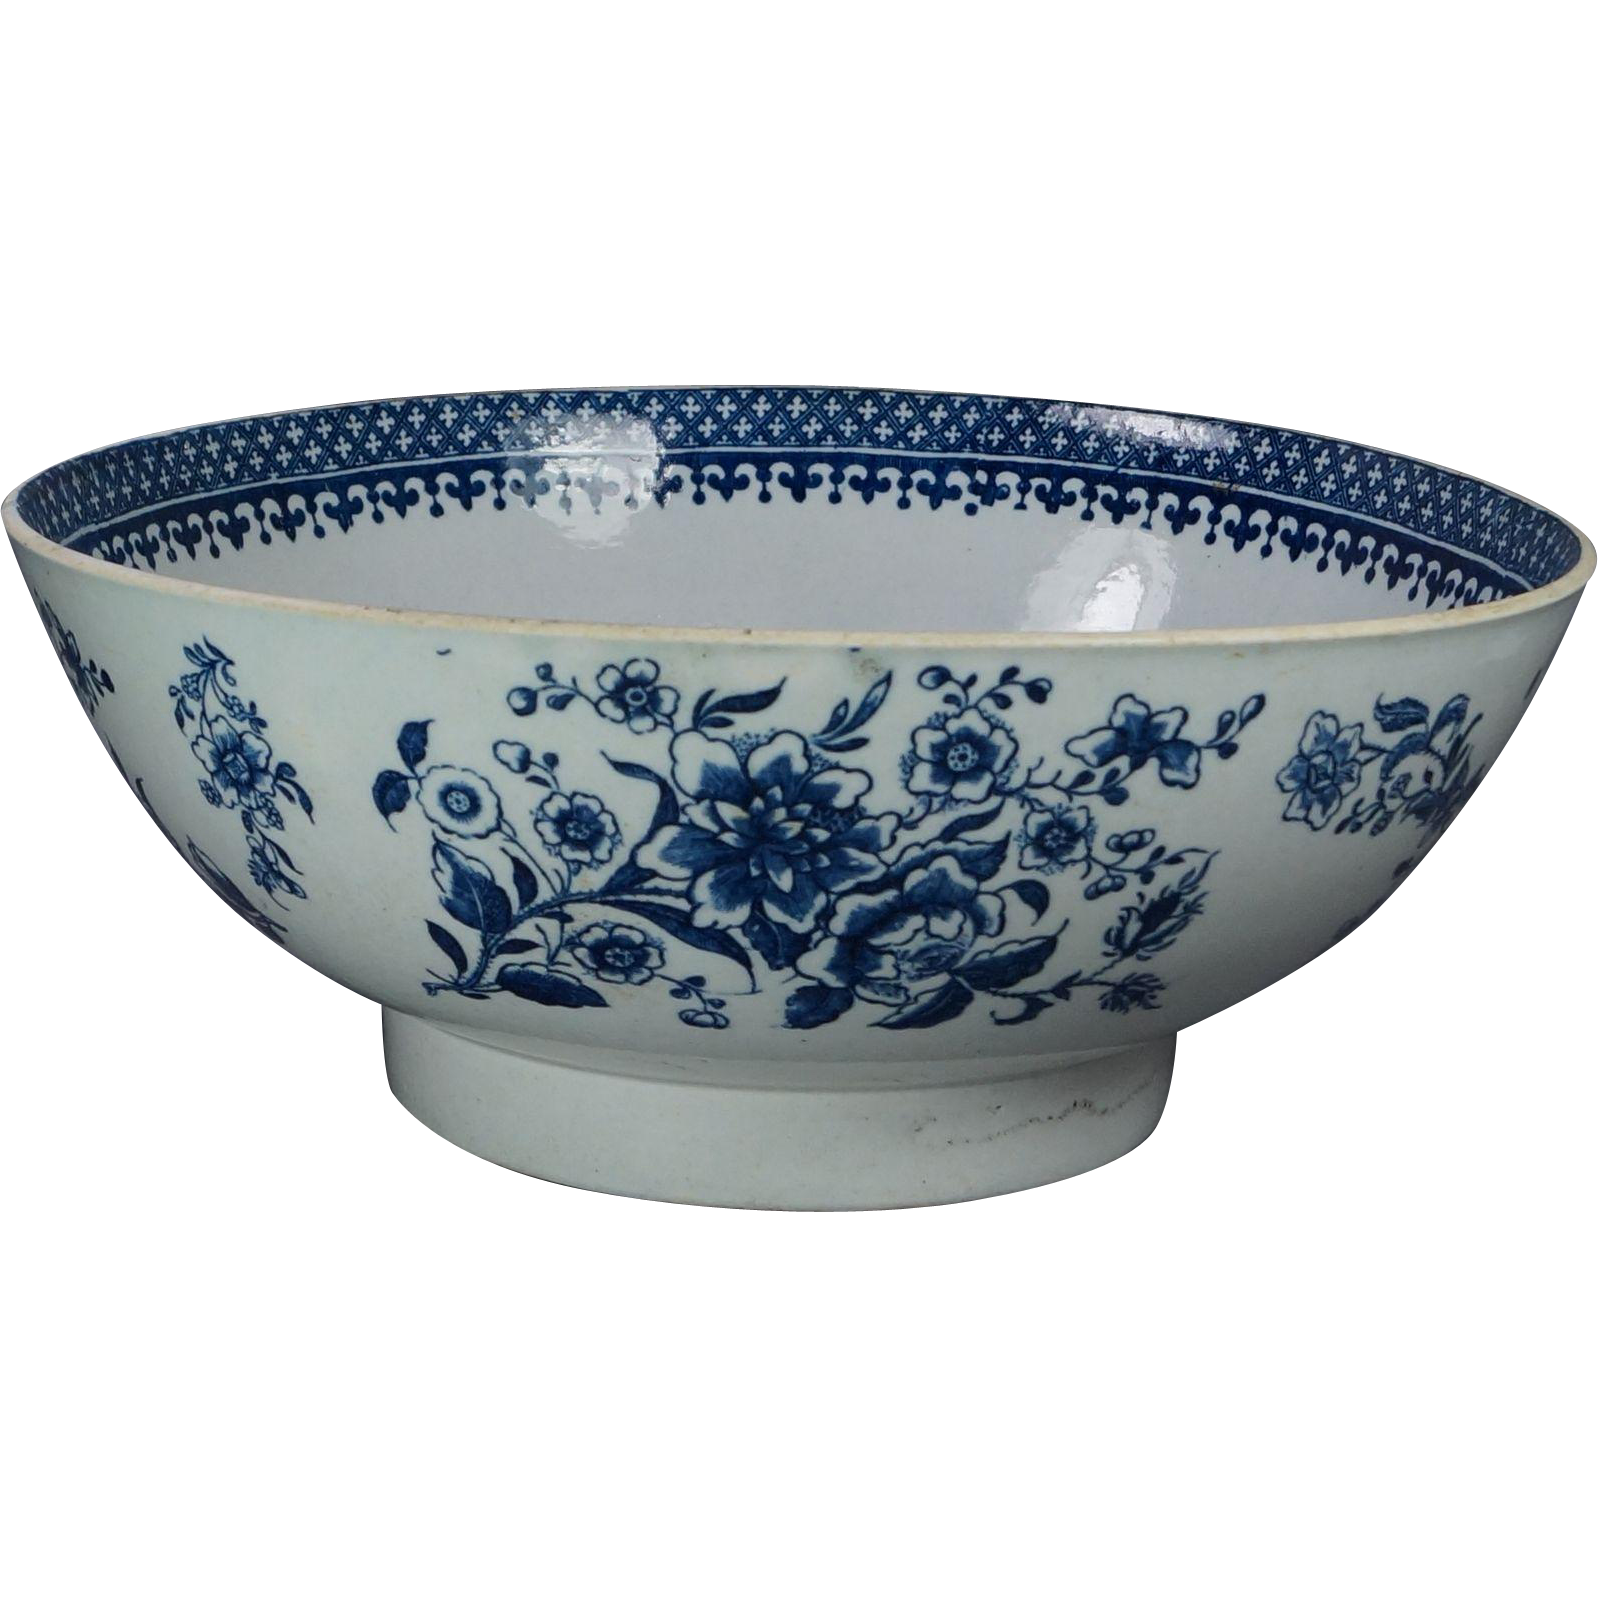 Punch bowl png. Antique blue and white